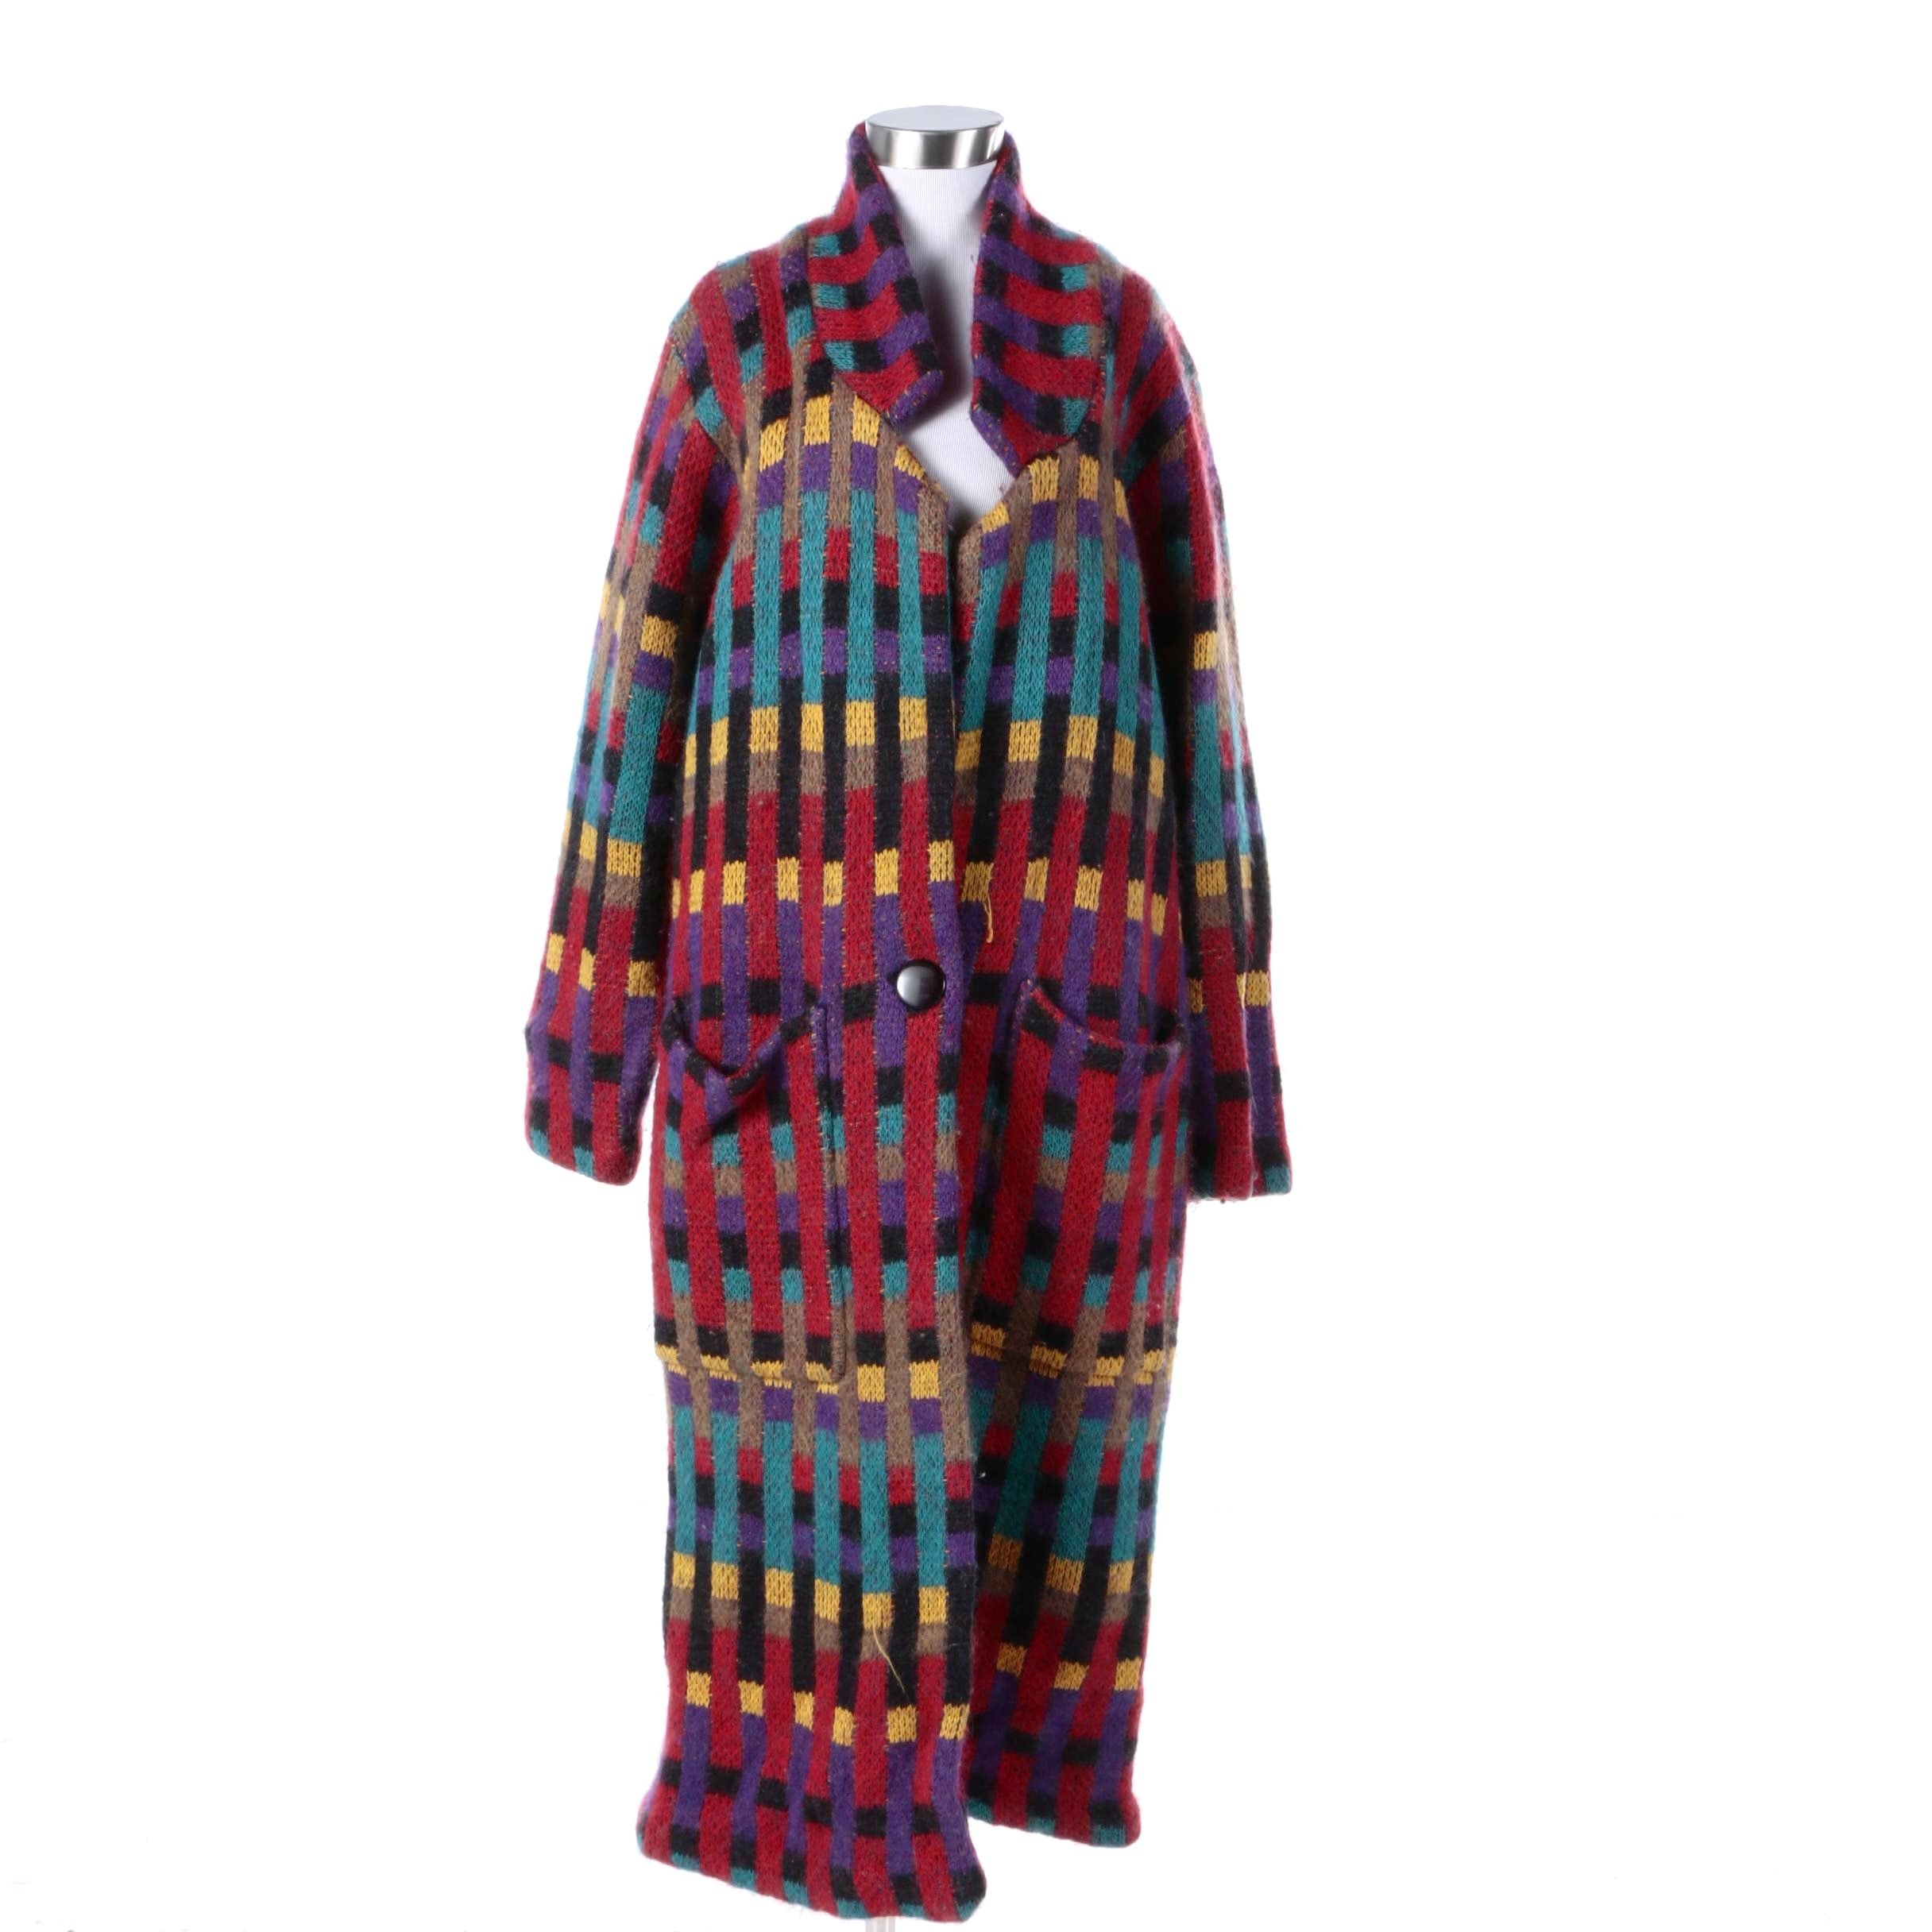 Women's I.B. Diffusion Wool Blend Duster Jacket